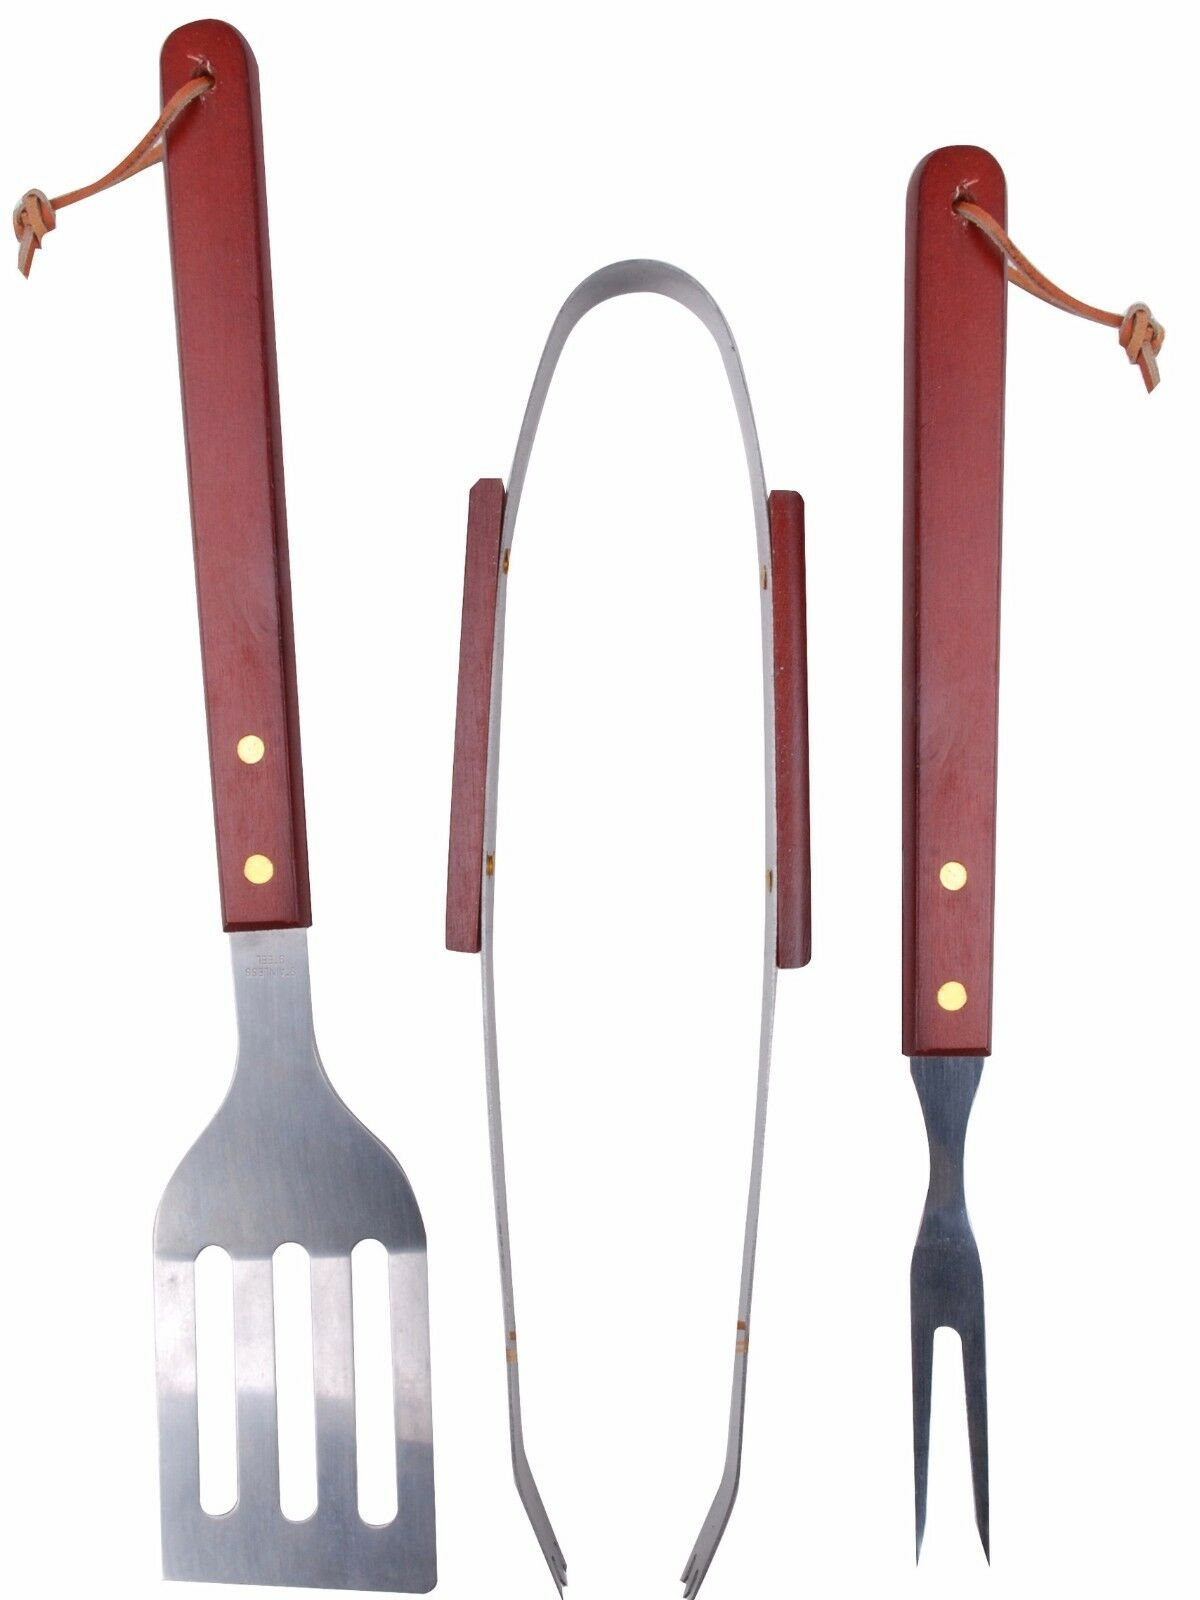 3 Piece BBQ set  Barbecue Spatula Tong and Fork with Wooden handles Deluxe Set